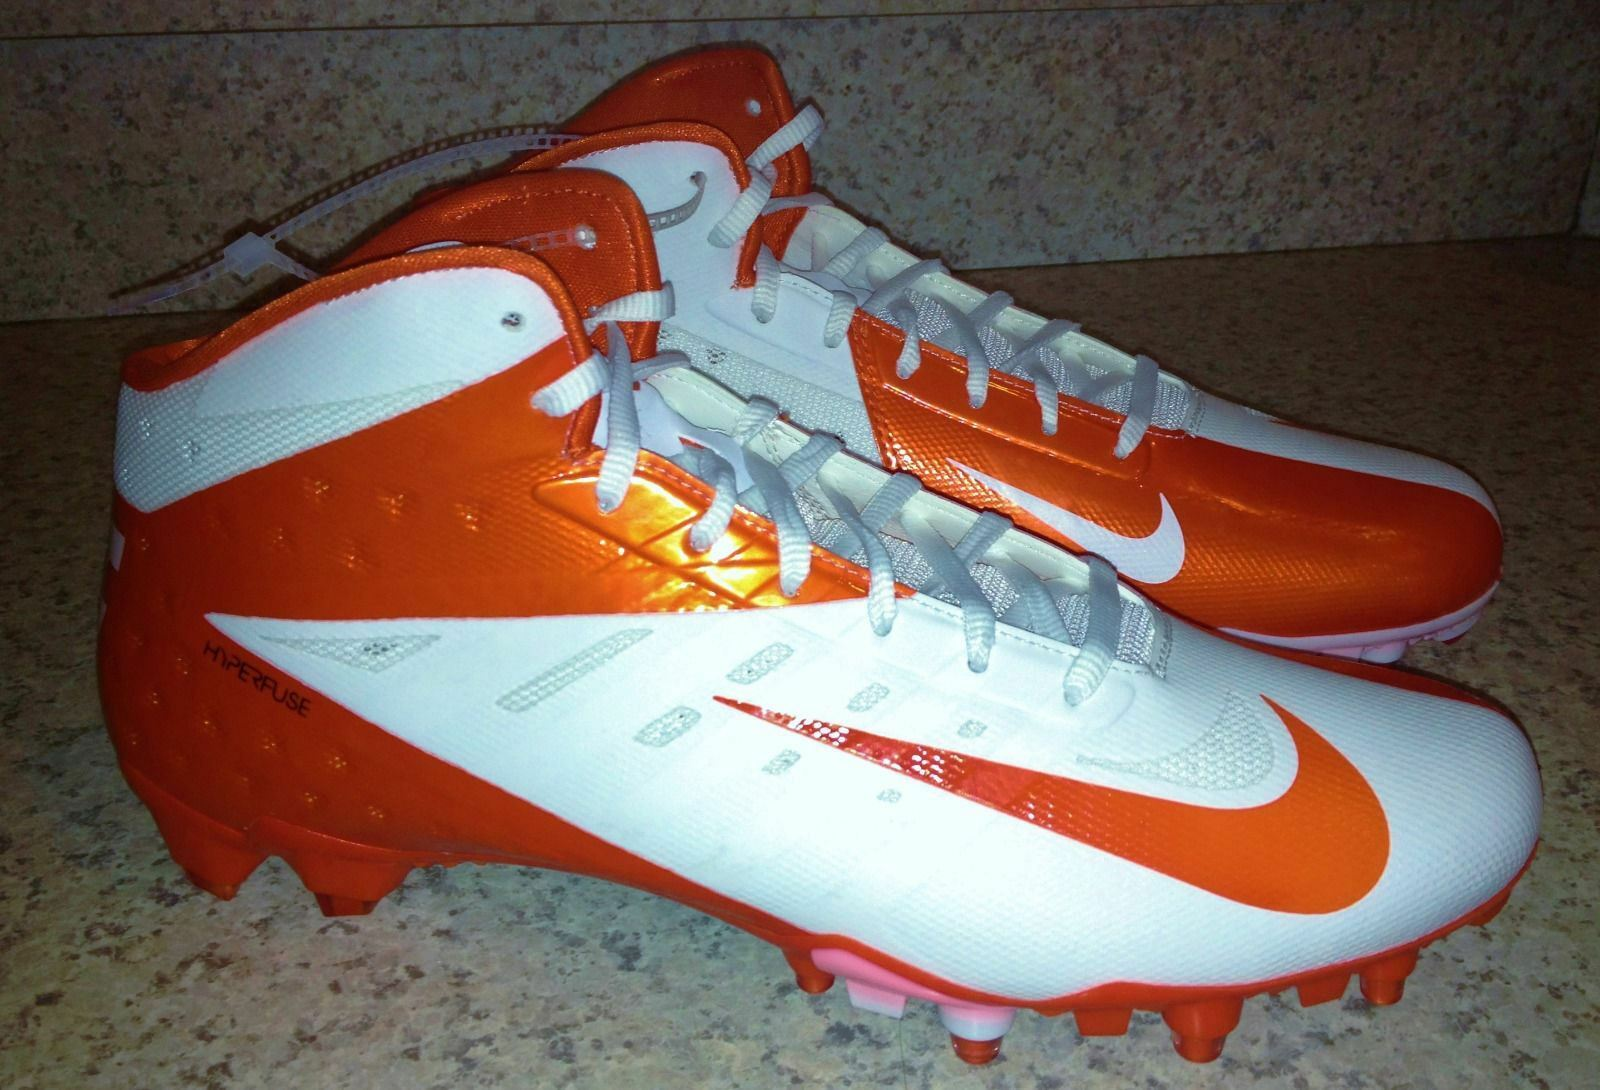 Comfortable and good-looking NIKE Vapor Talon Elite 3/4 Mid Molded Orange White Football Cleats NEW Mens 11.5